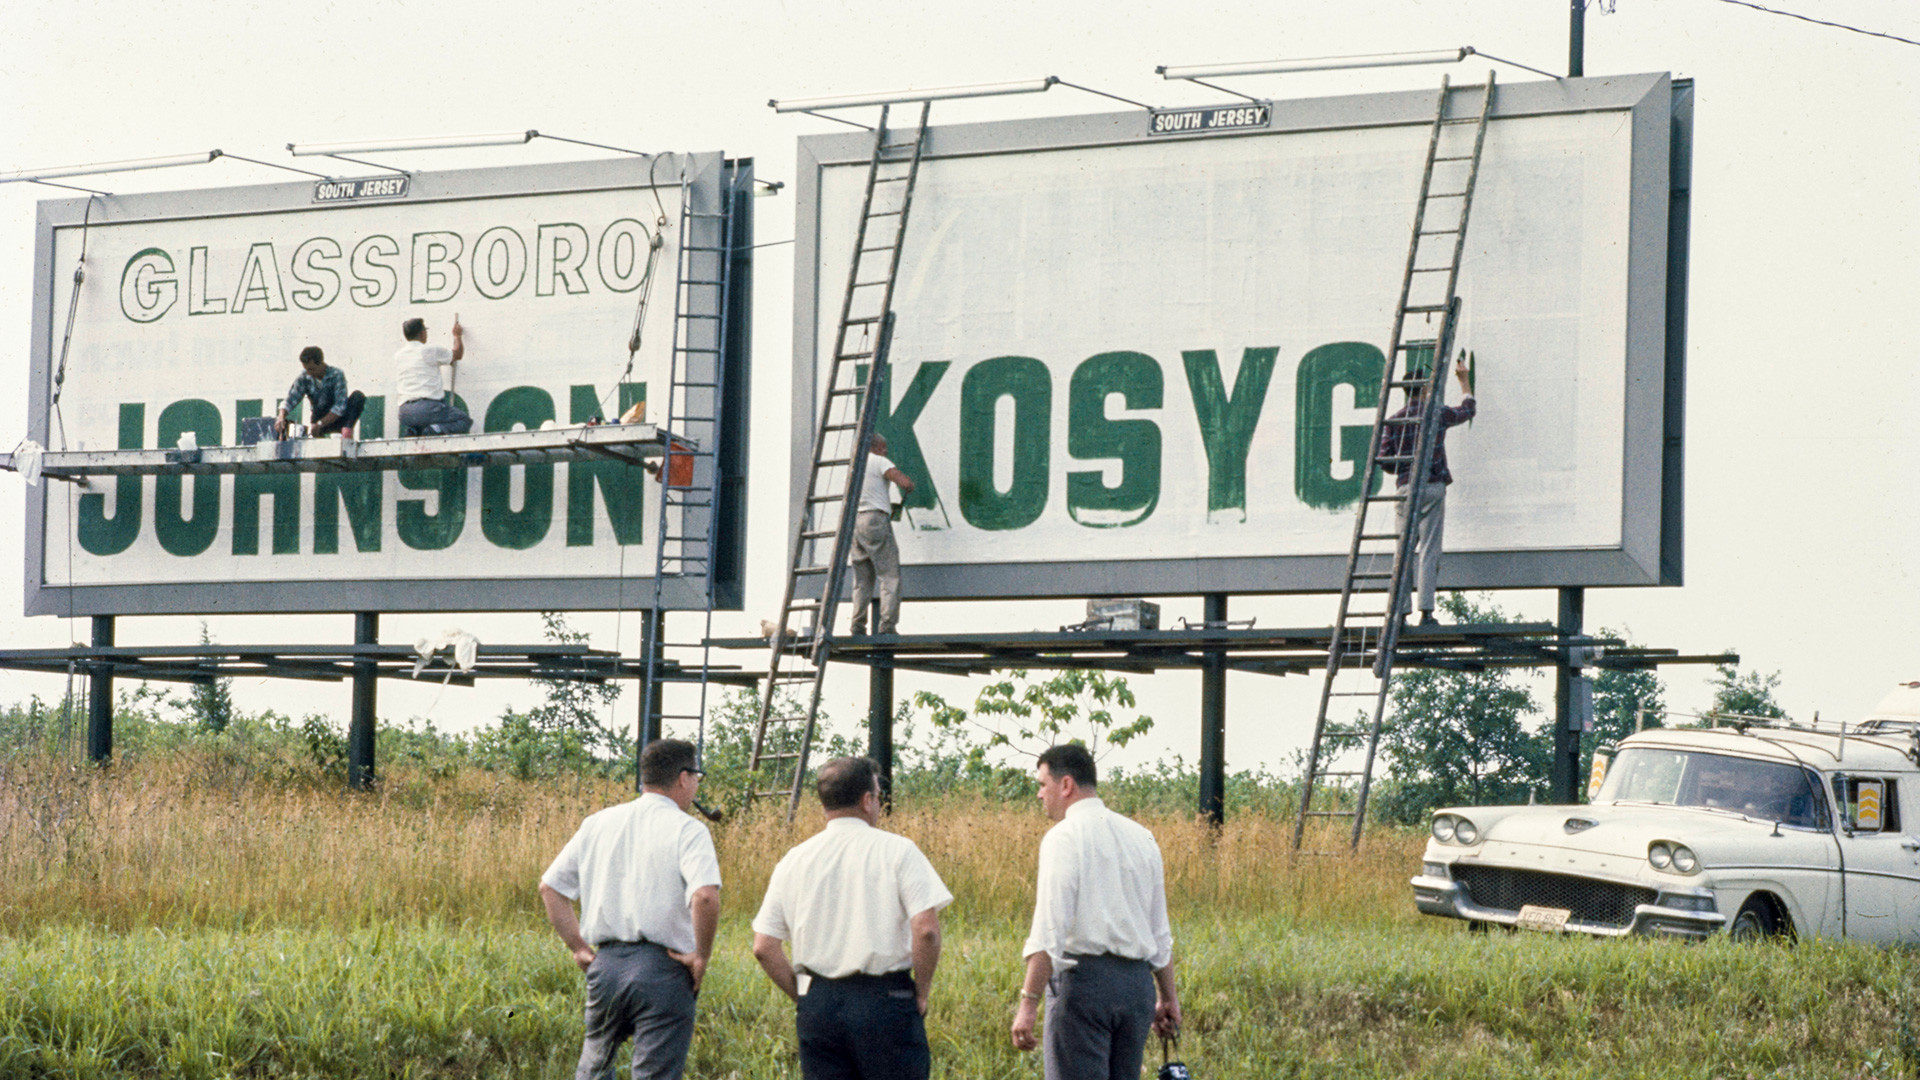 Welcome signs with the names Johnson and Kosygin on the highway during the Glassboro Summit Conference on Soviet-U.S. relations in Glassboro